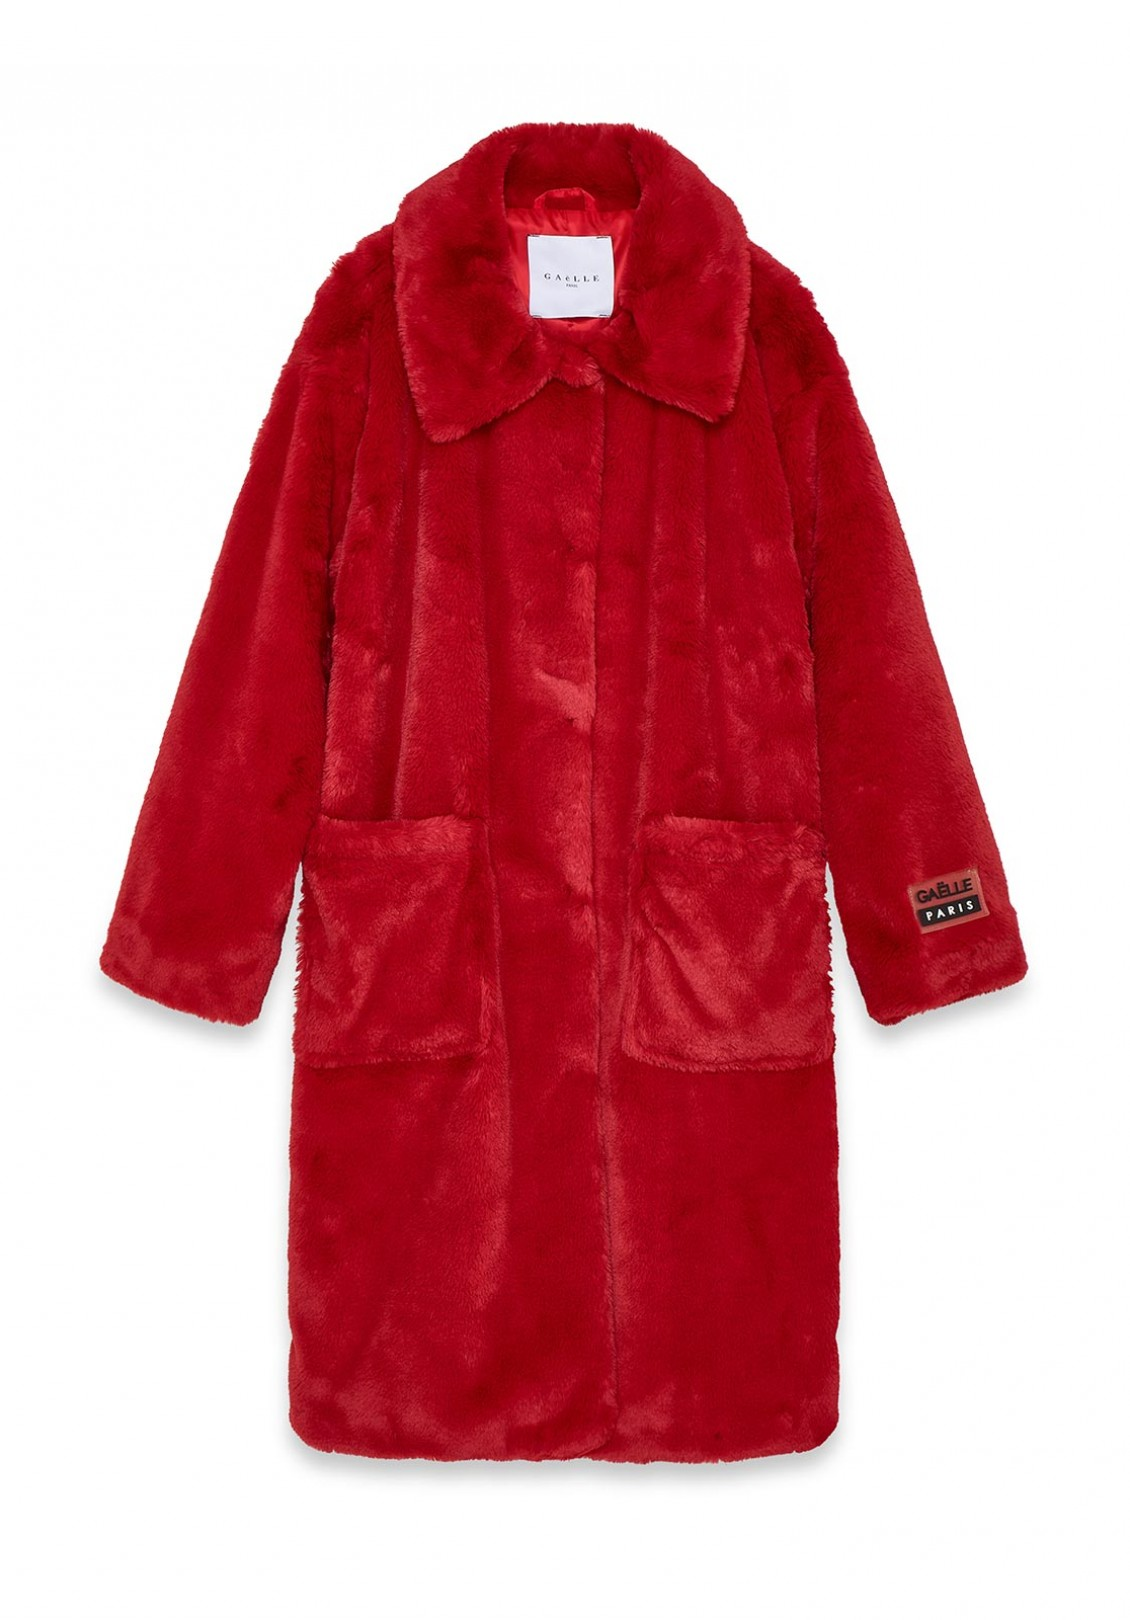 COAT - GBD7211 - GAELLE PARIS